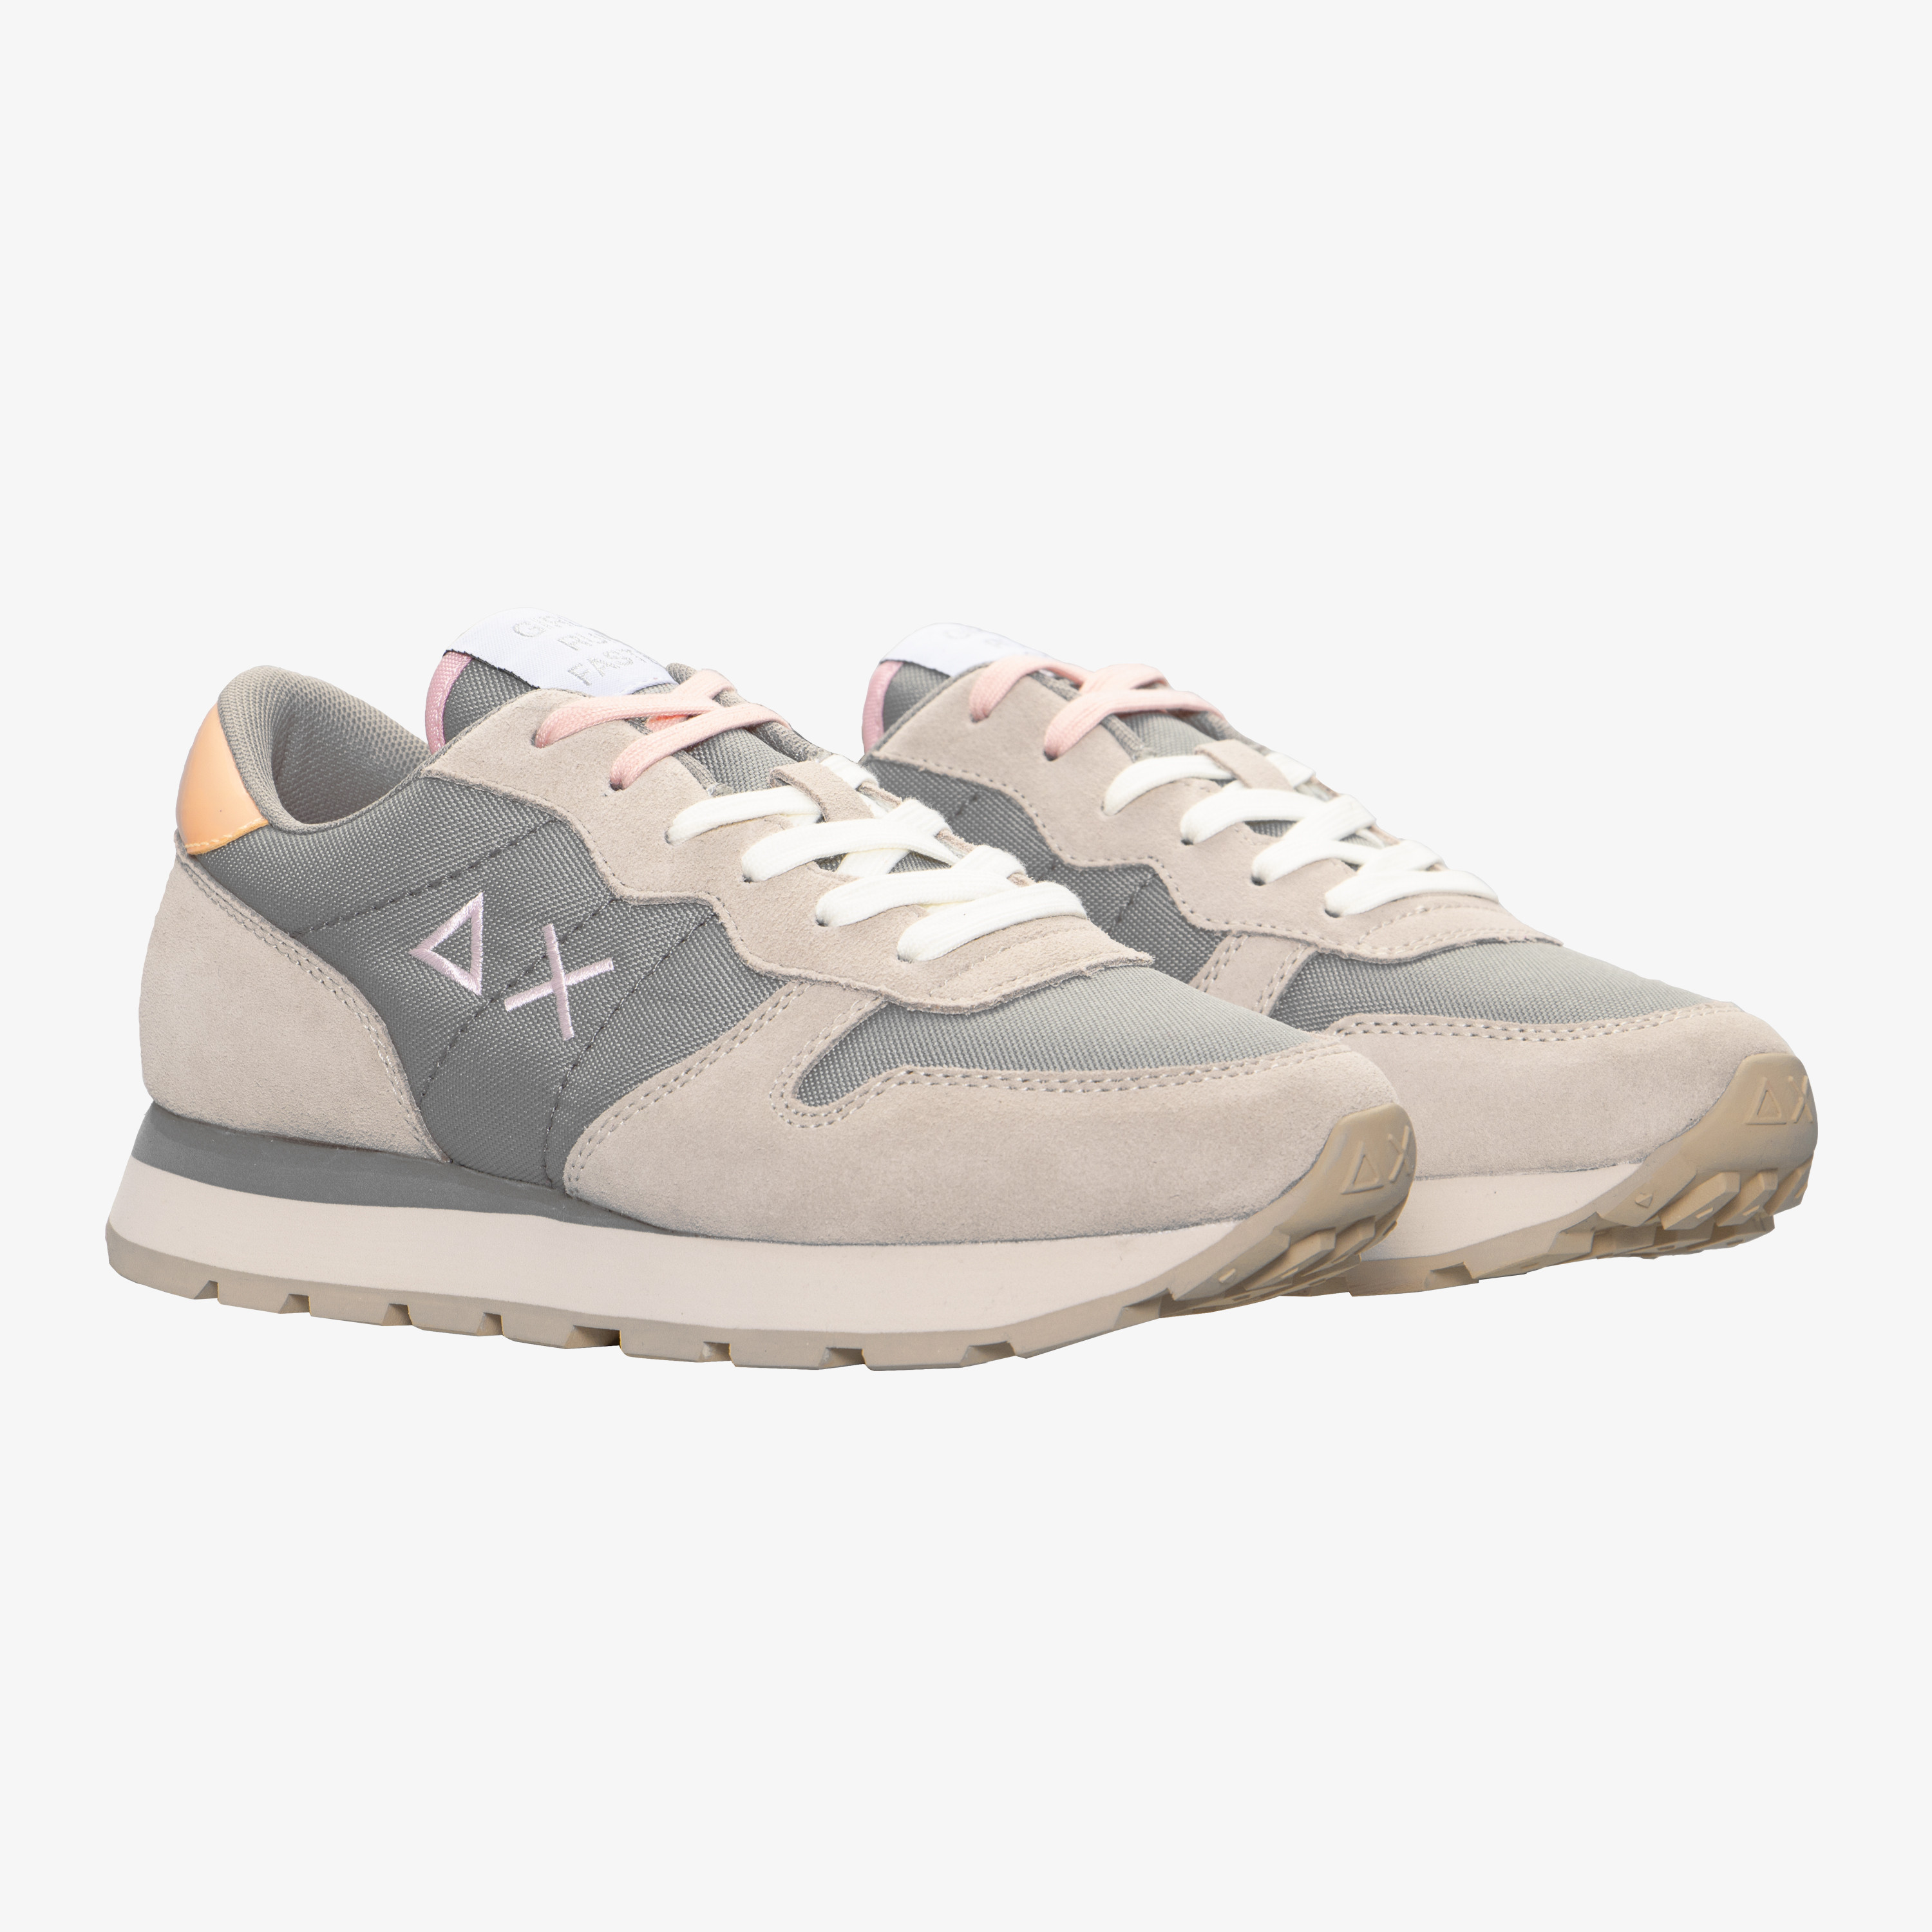 ALLY SOLID LIGHT GREY/PINK